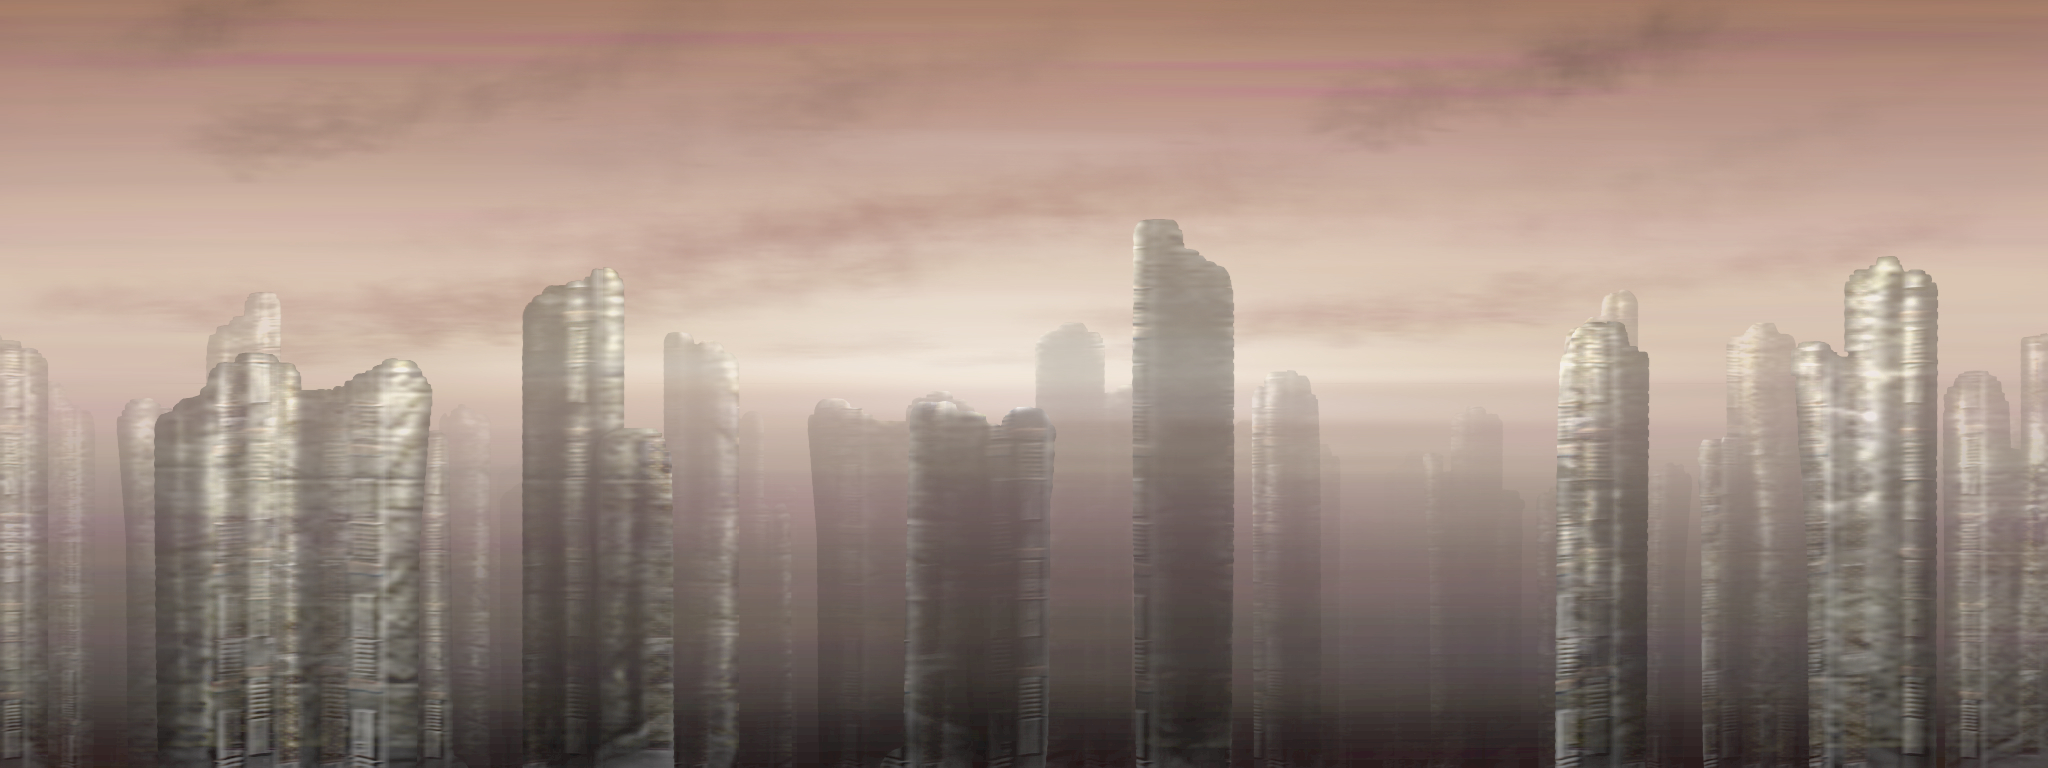 alien City scape HD Wallpaper